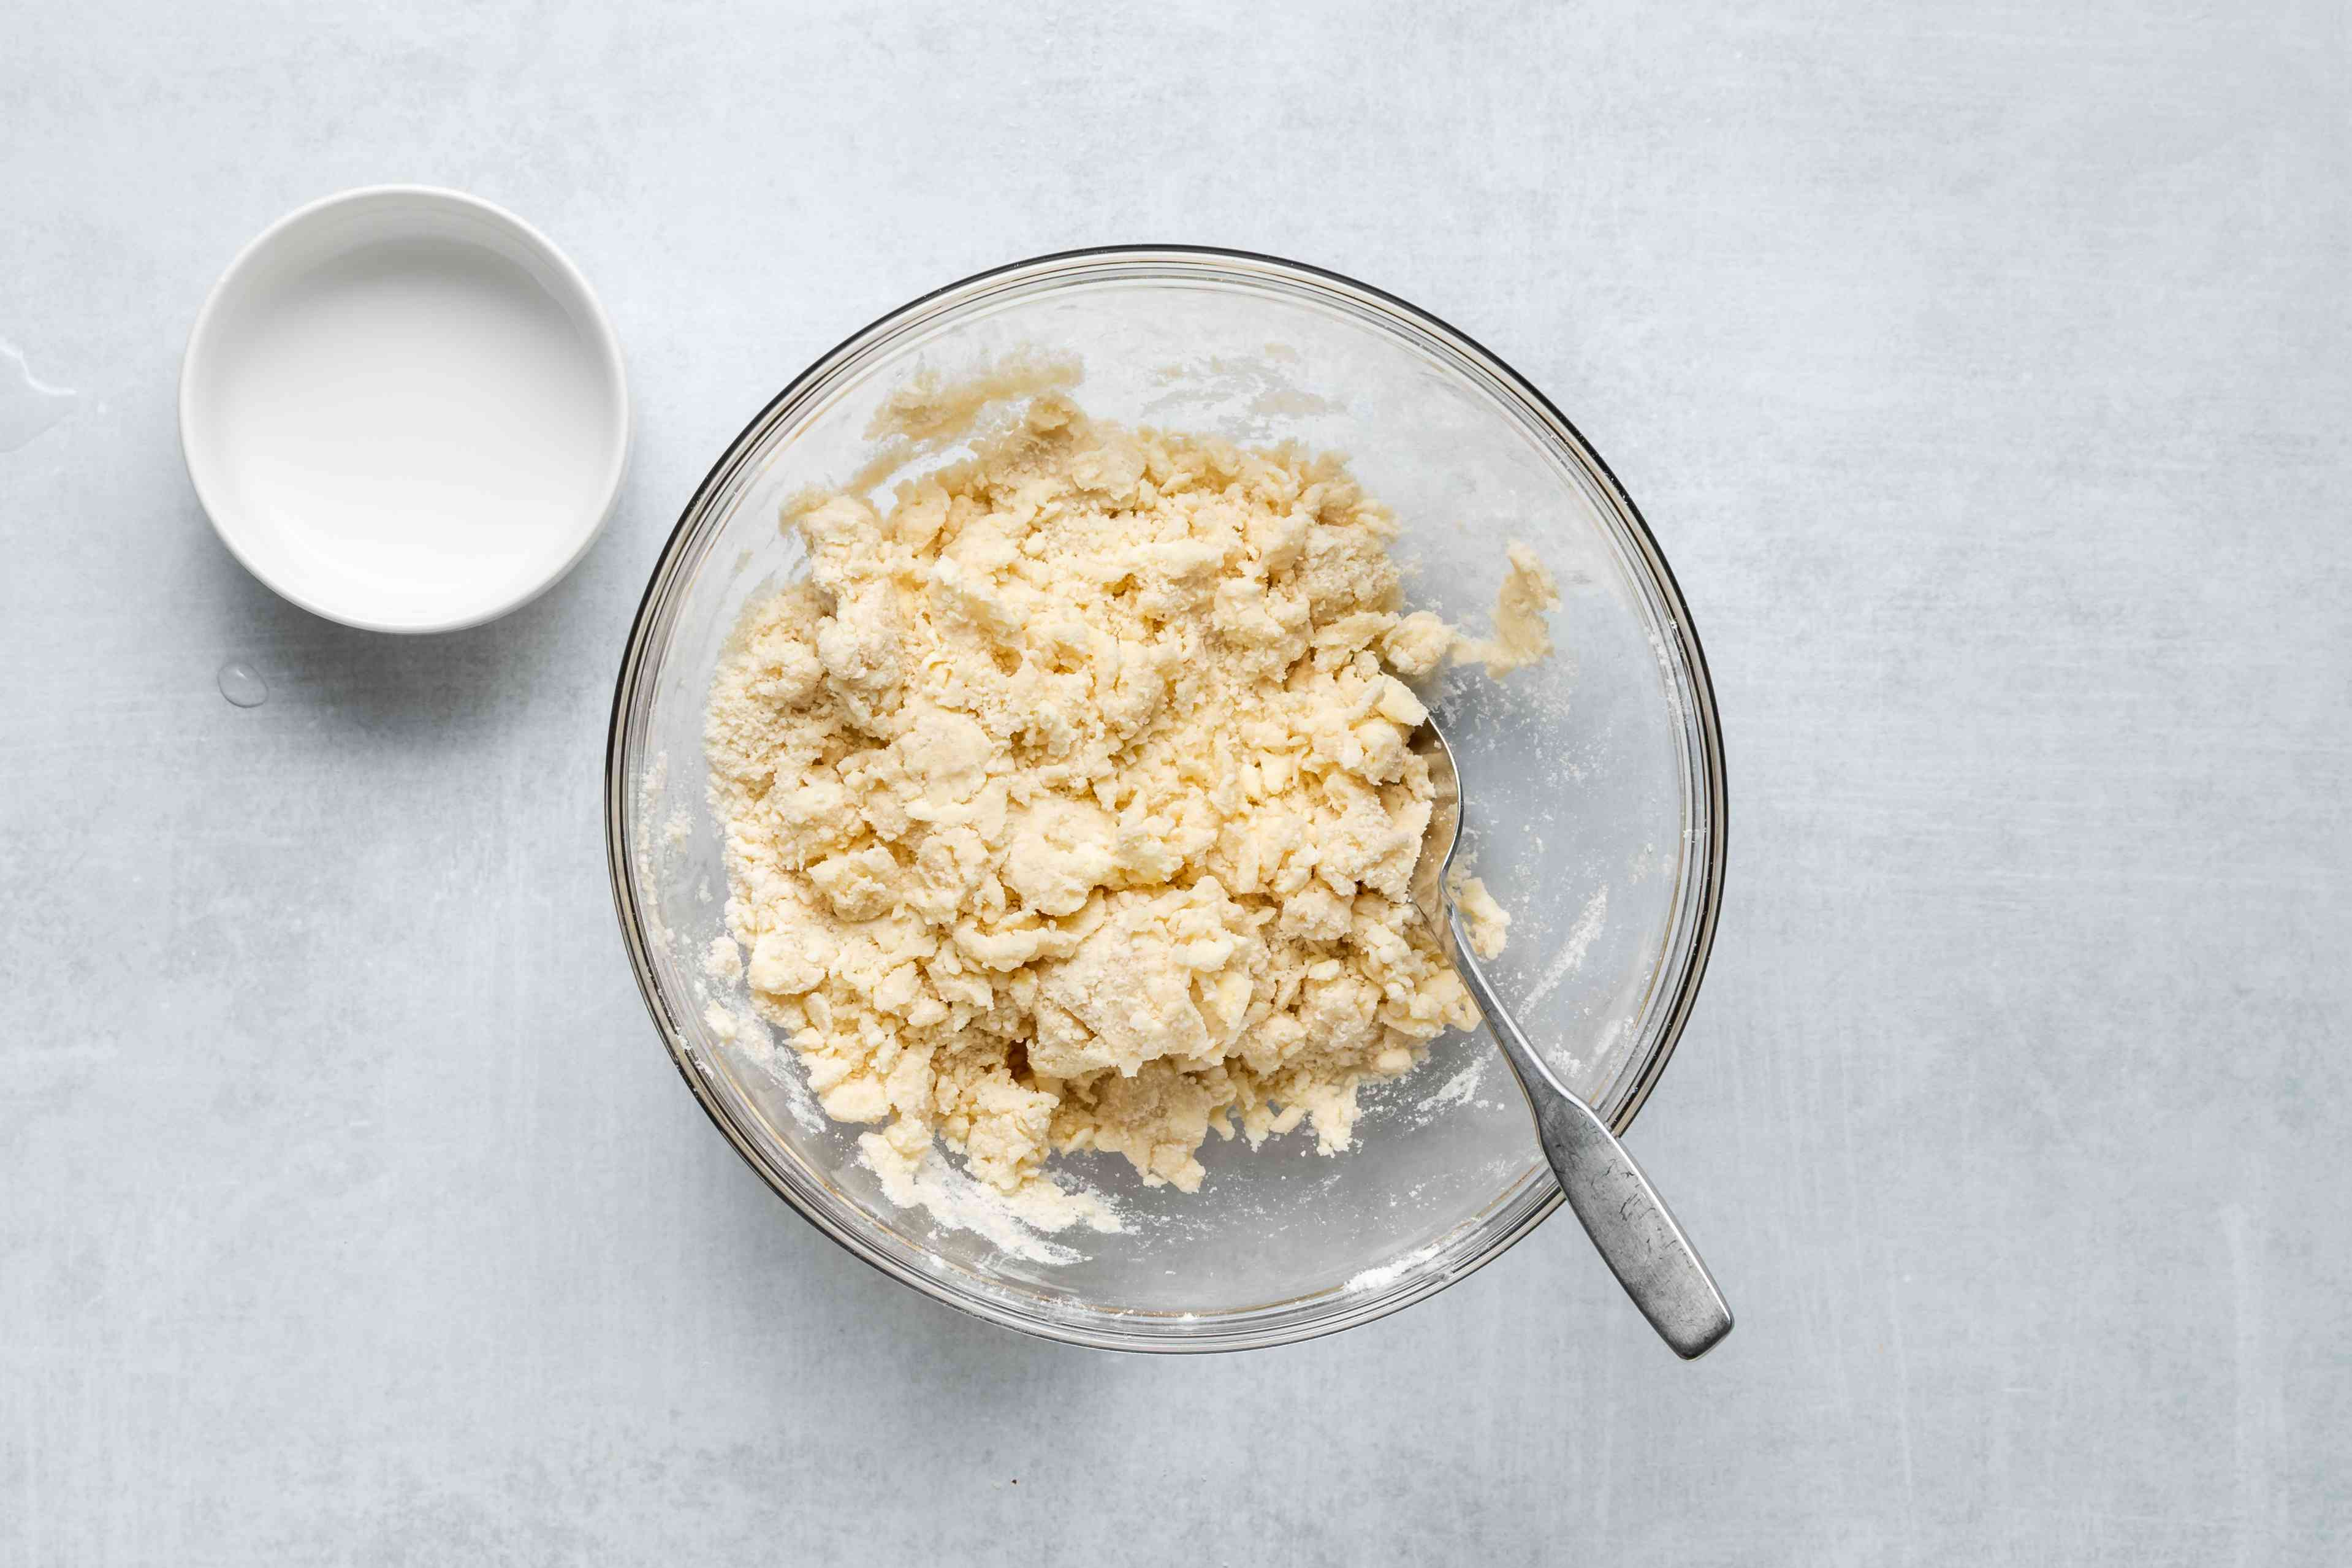 add water to flour mixture in the bowl